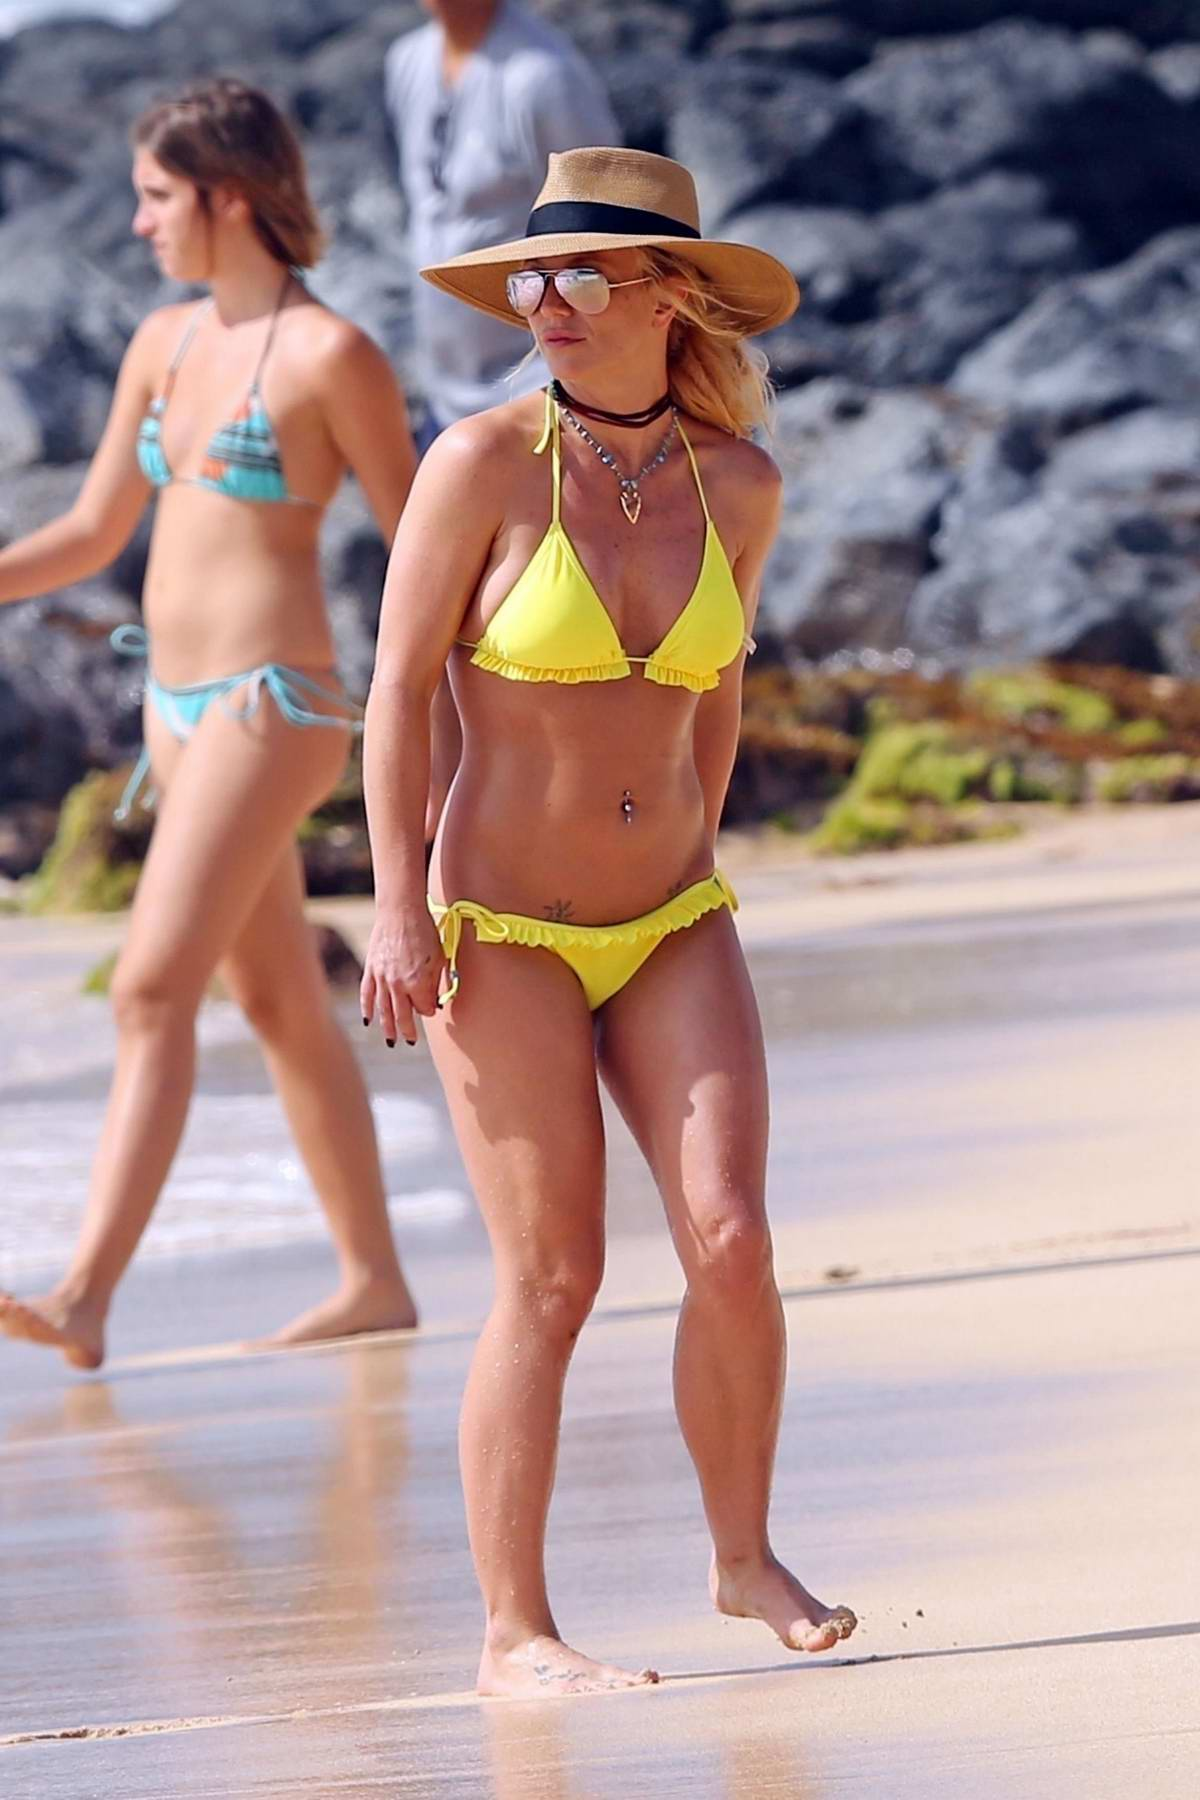 britney-spears-spotted-at-the-beach-wear